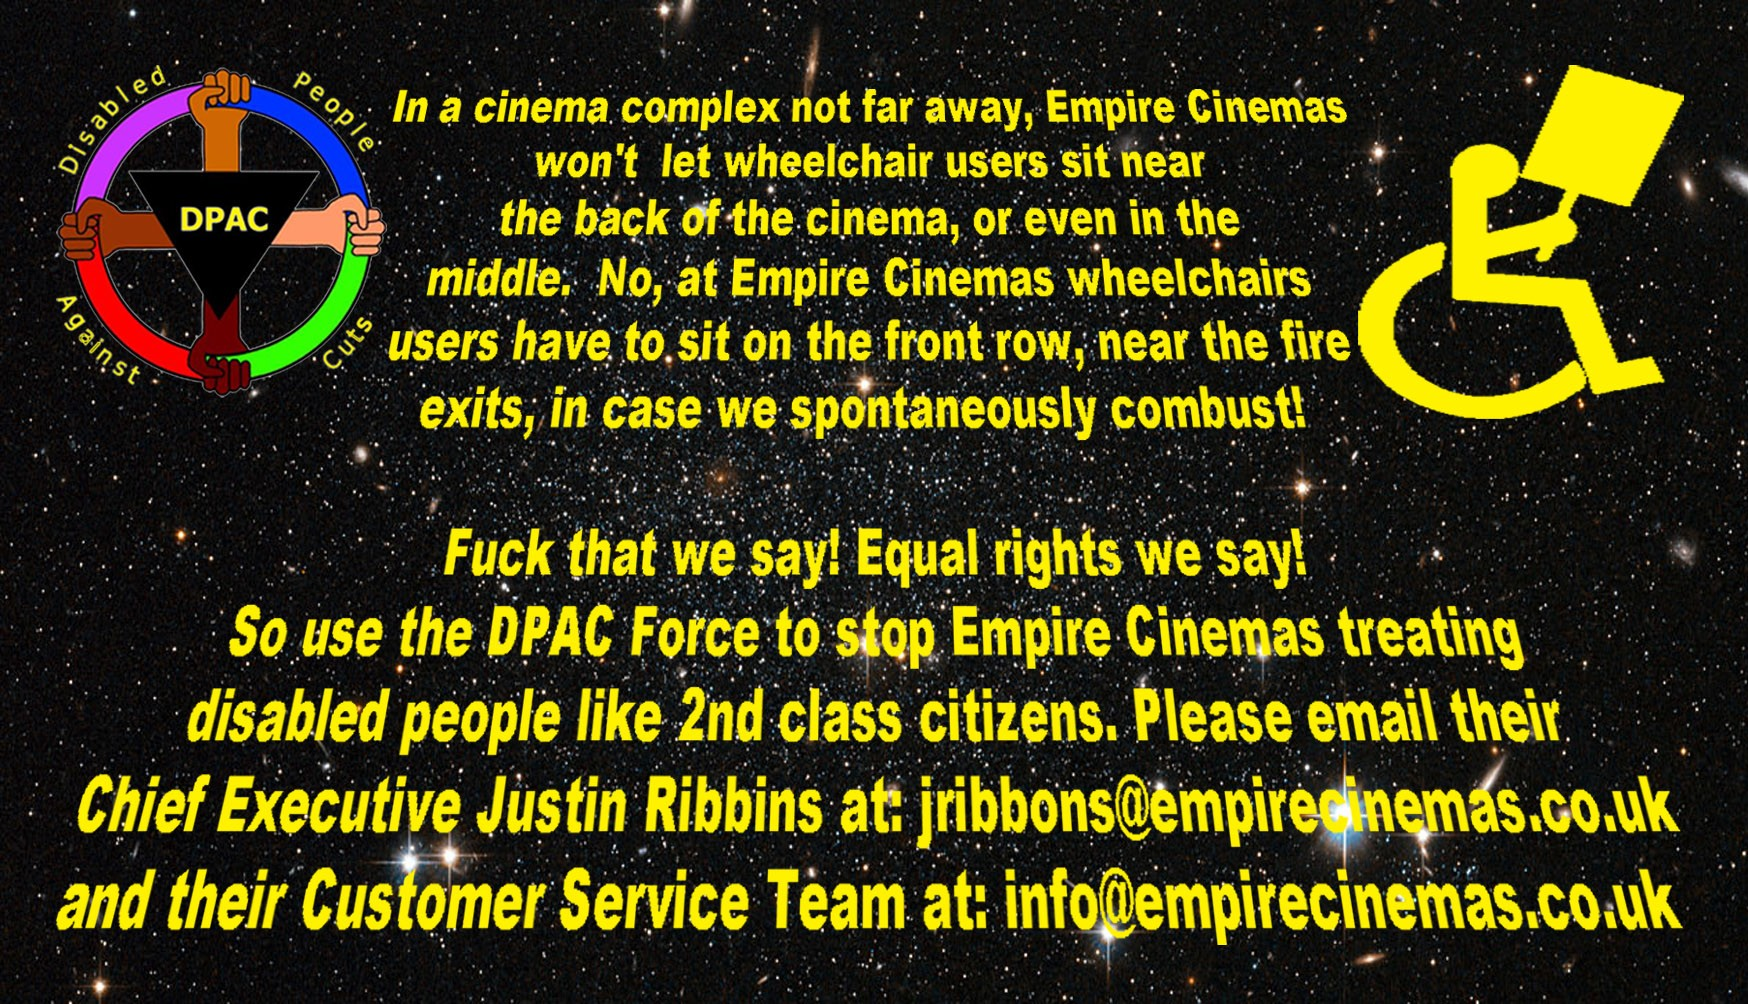 It seems that Empire cinemas are taking us back to the days when disabled people weren't allowed in cinemas because they were considered a health and safety/ fire hazard. It is Empire's policy that all cinema seats for disabled people should now be at the front of the cinema near the fire exits.